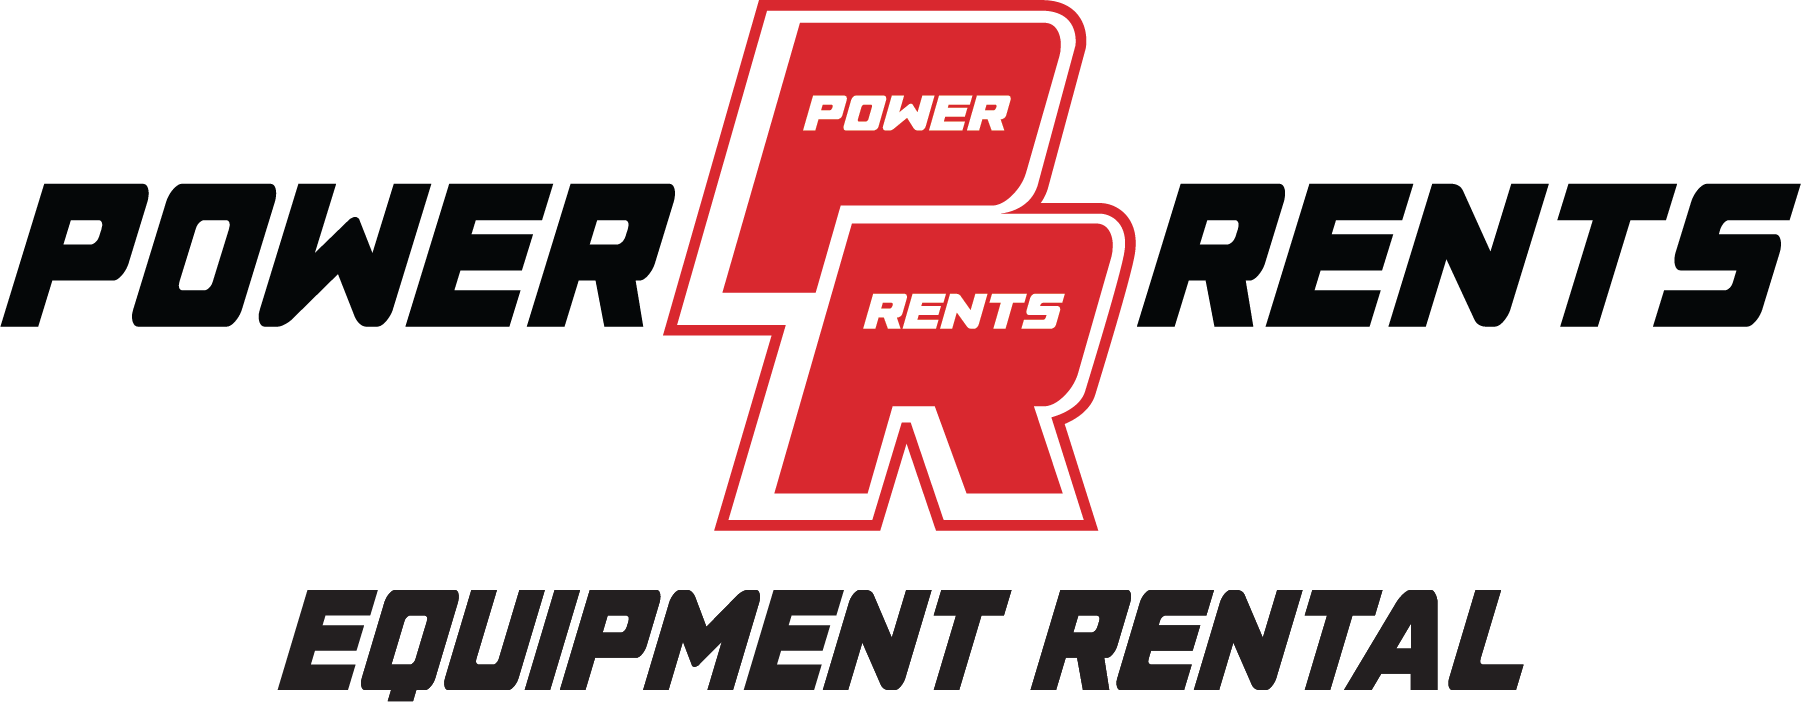 Power Rents Logo1-01.png